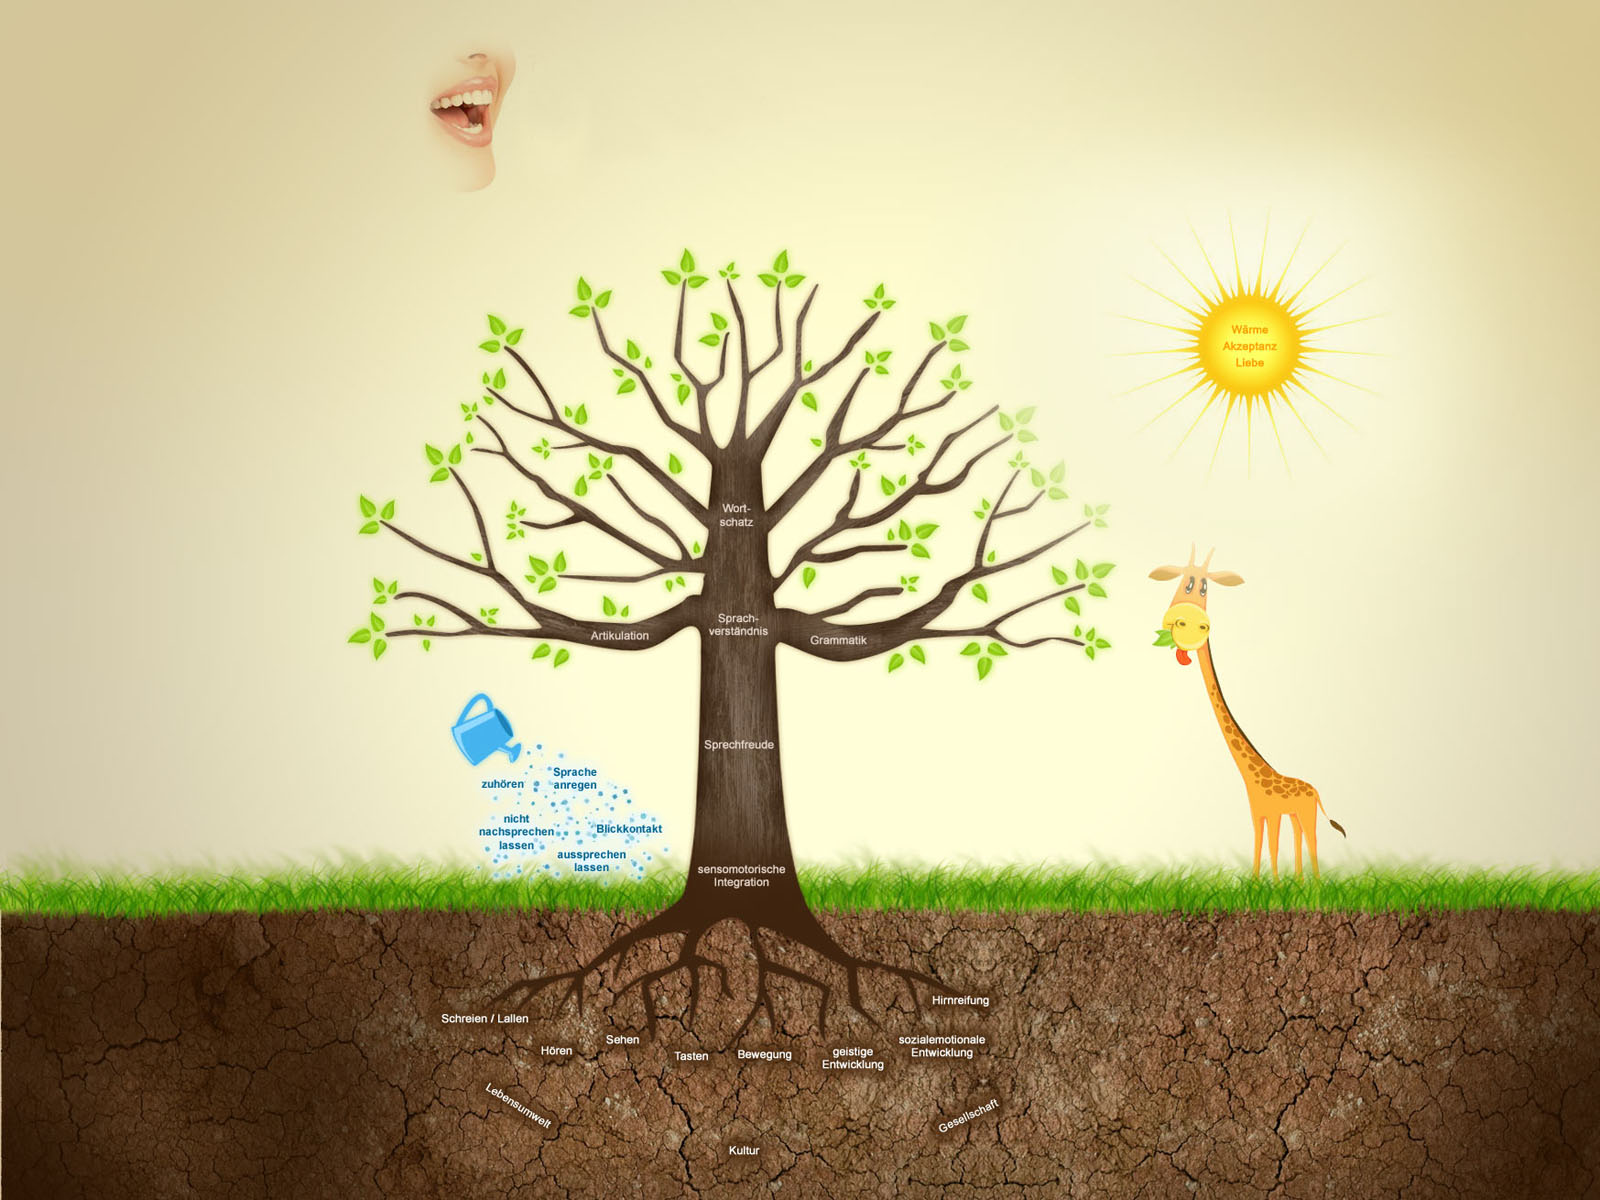 Sun trees and nature life PPT Backgrounds